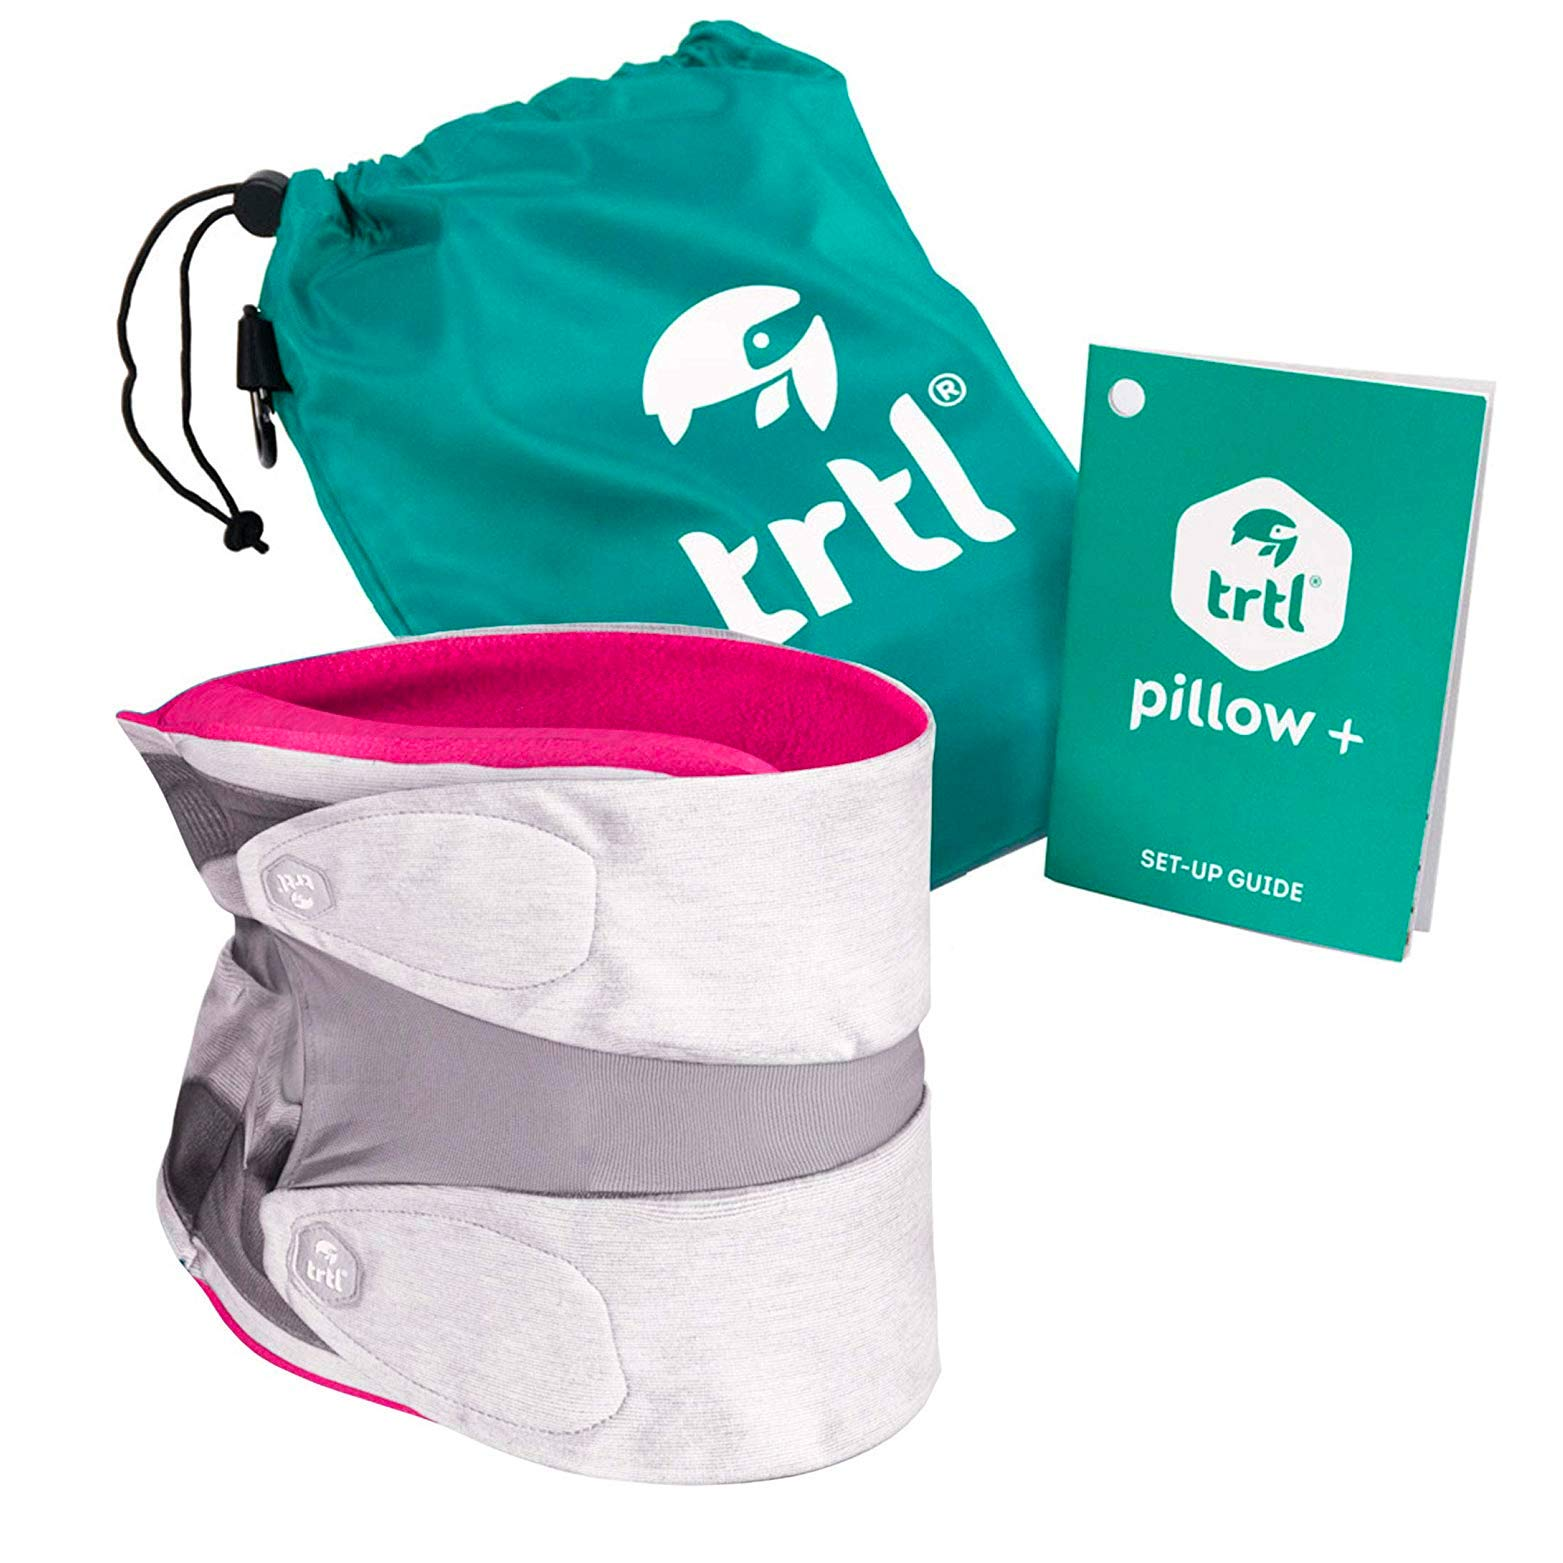 trtl Pillow Plus, Travel Pillow - Fully Adjustable Neck Pillow for Airplane Travel, Car, Bus and Rail. (Pink) Includes Water Proof Carry Bag and Setup Guide Travel Accessories